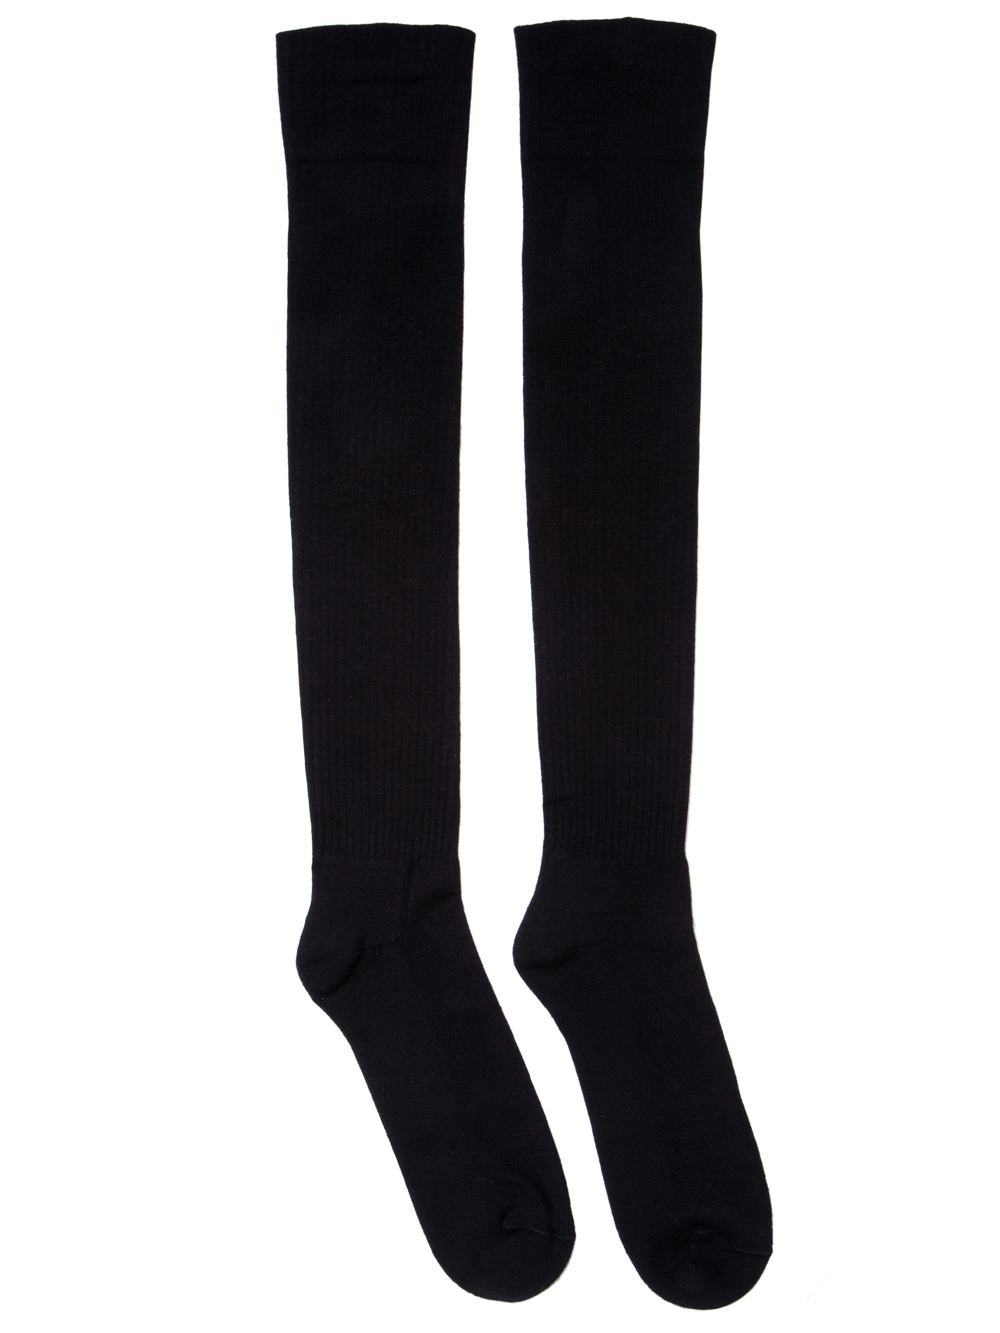 RICK OWENS SS19 BABEL KNEE HIGH SOCKS IN BLACK COTTON